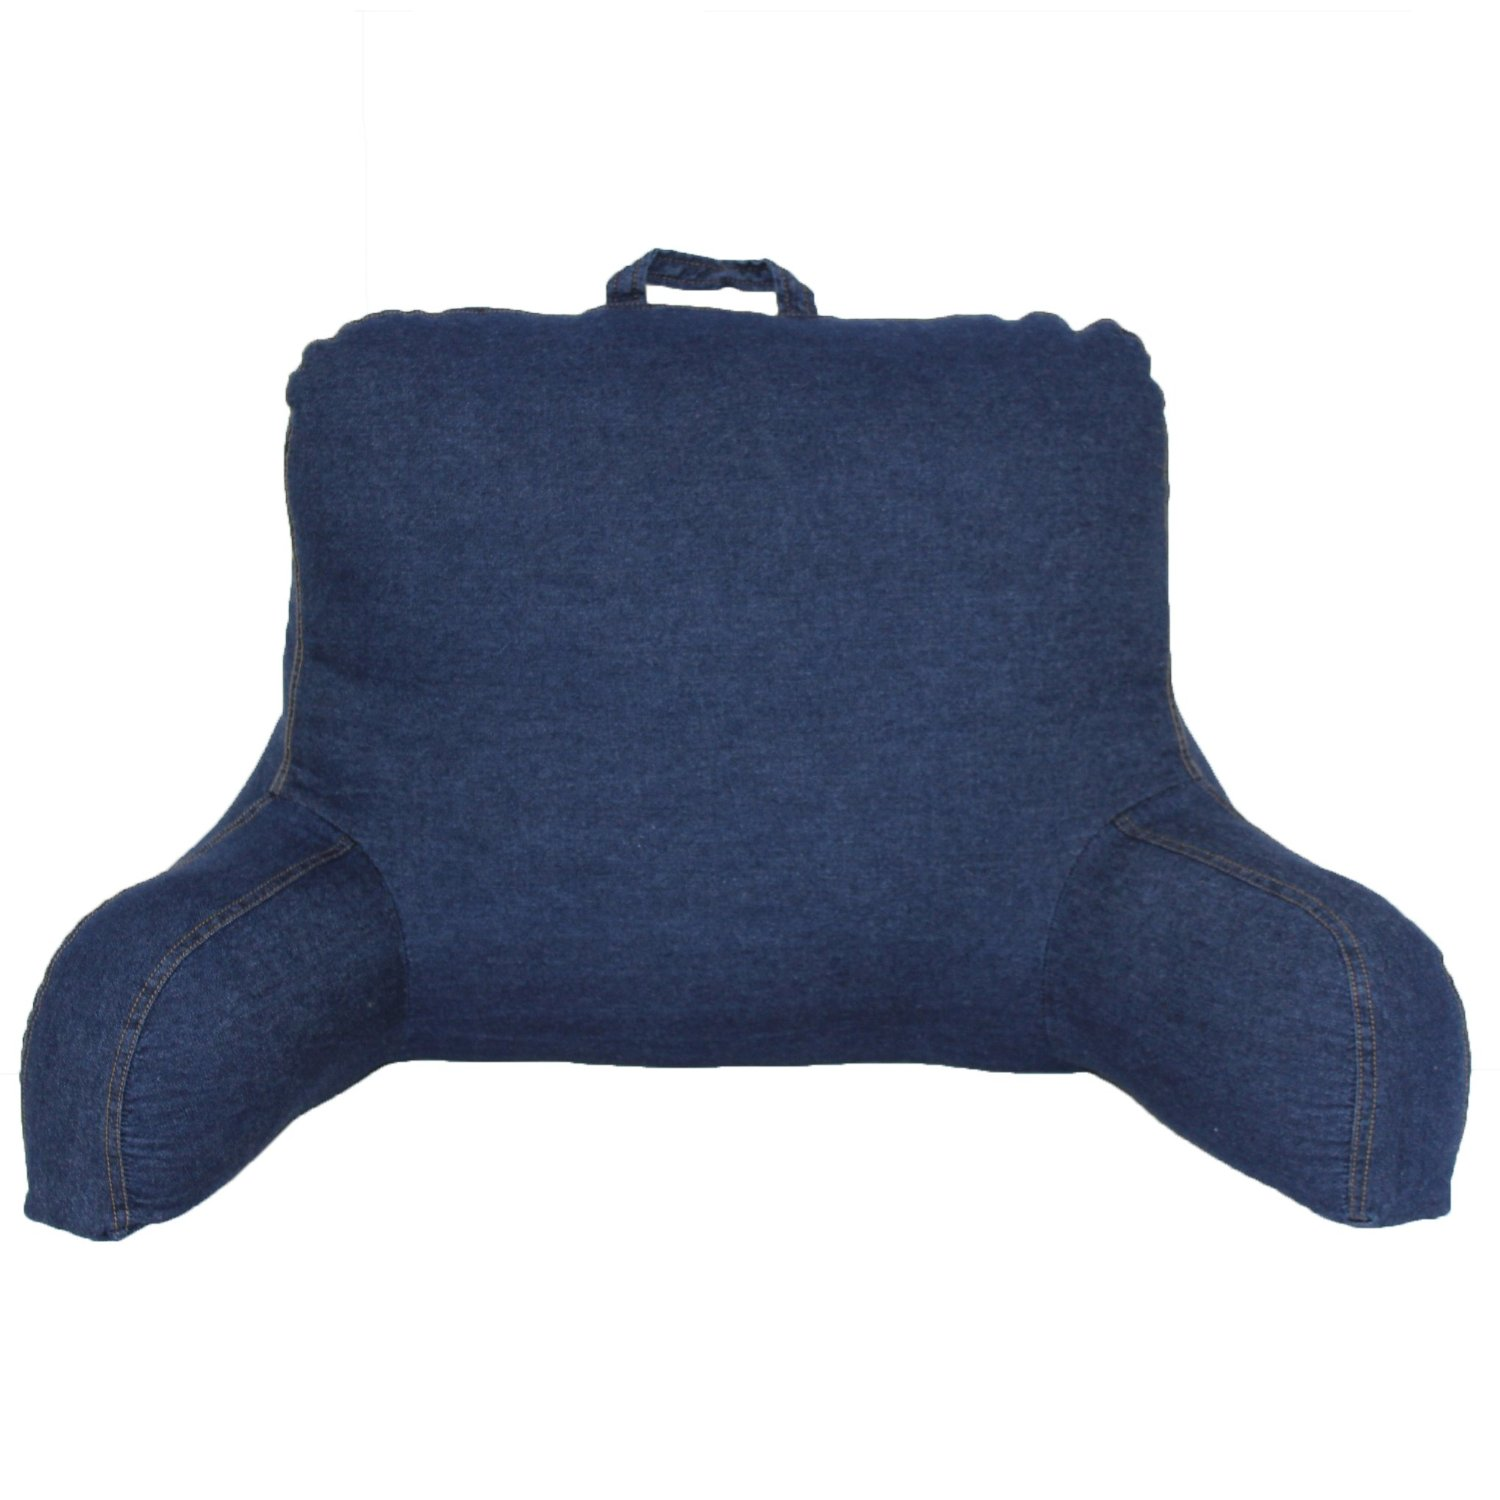 Bed pillow chair - Bed Chair Pillow Amazon Dark Blue Pillows For Sitting Up In Bed